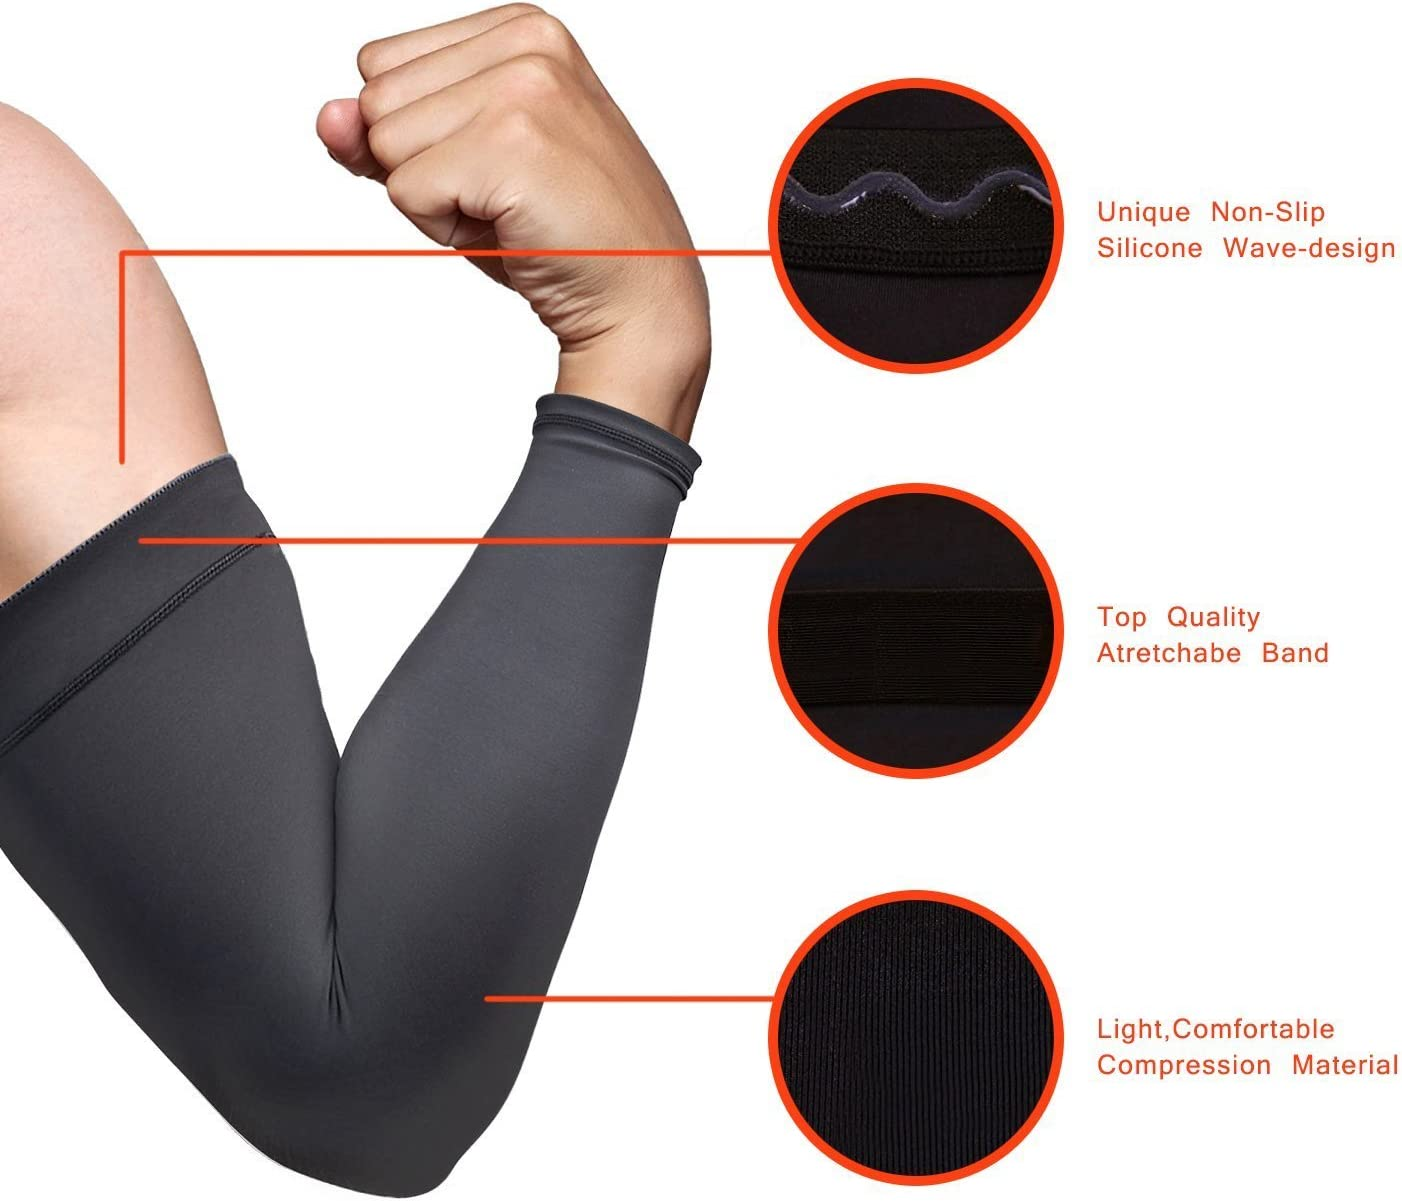 UV Protection Anti-Slip Breathable for Men Women Cycling Running Driving IKuaFly Arm Sleeves Basketball